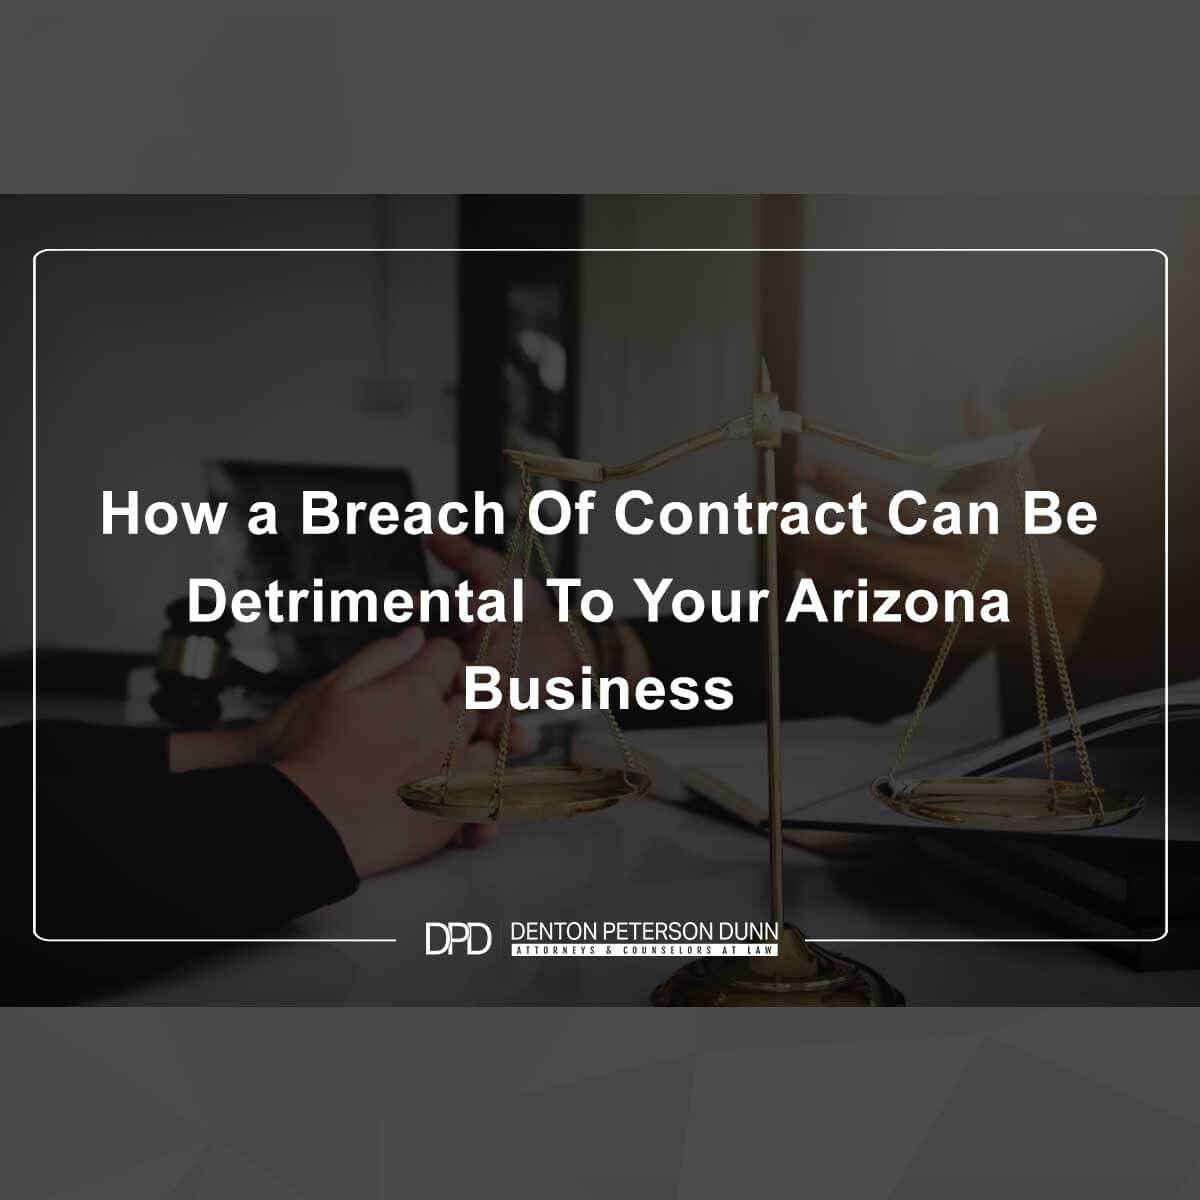 How a Breach Of Contract Can Be Detrimental To Your Arizona Business